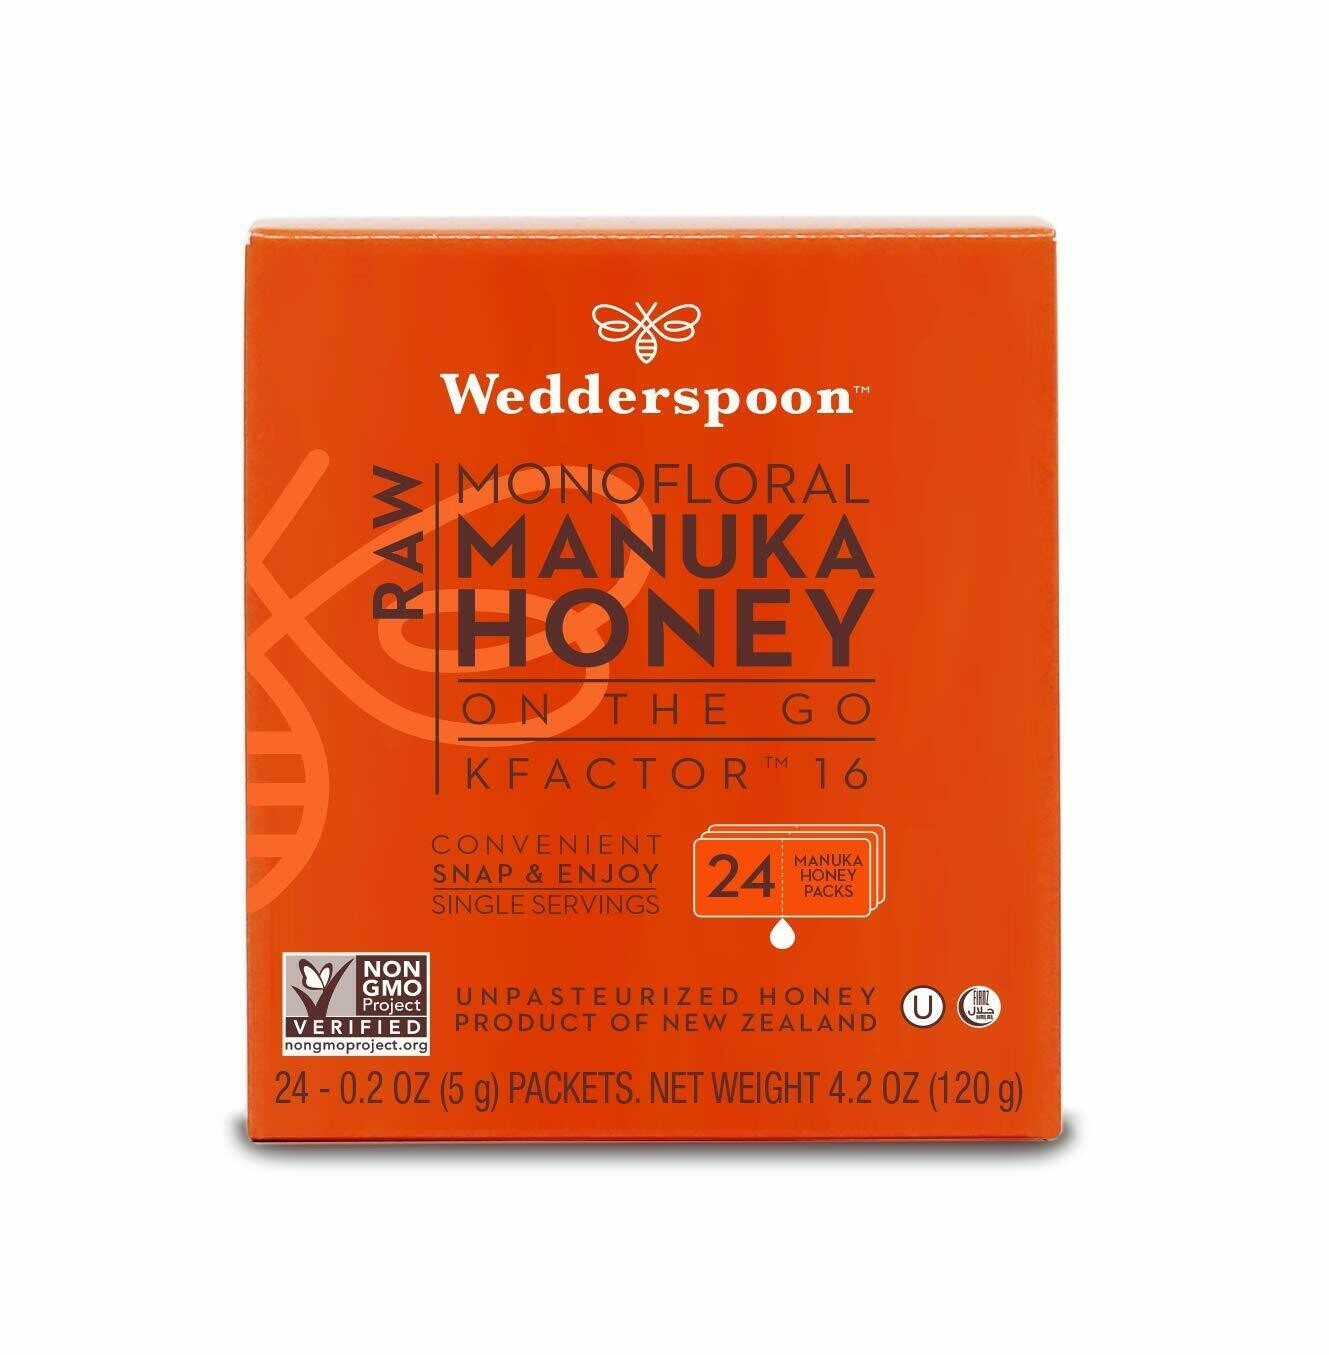 Wedderspoon Raw Manuka Honey KFactor 16, Unpasteurized, 24 Sachets/Pack